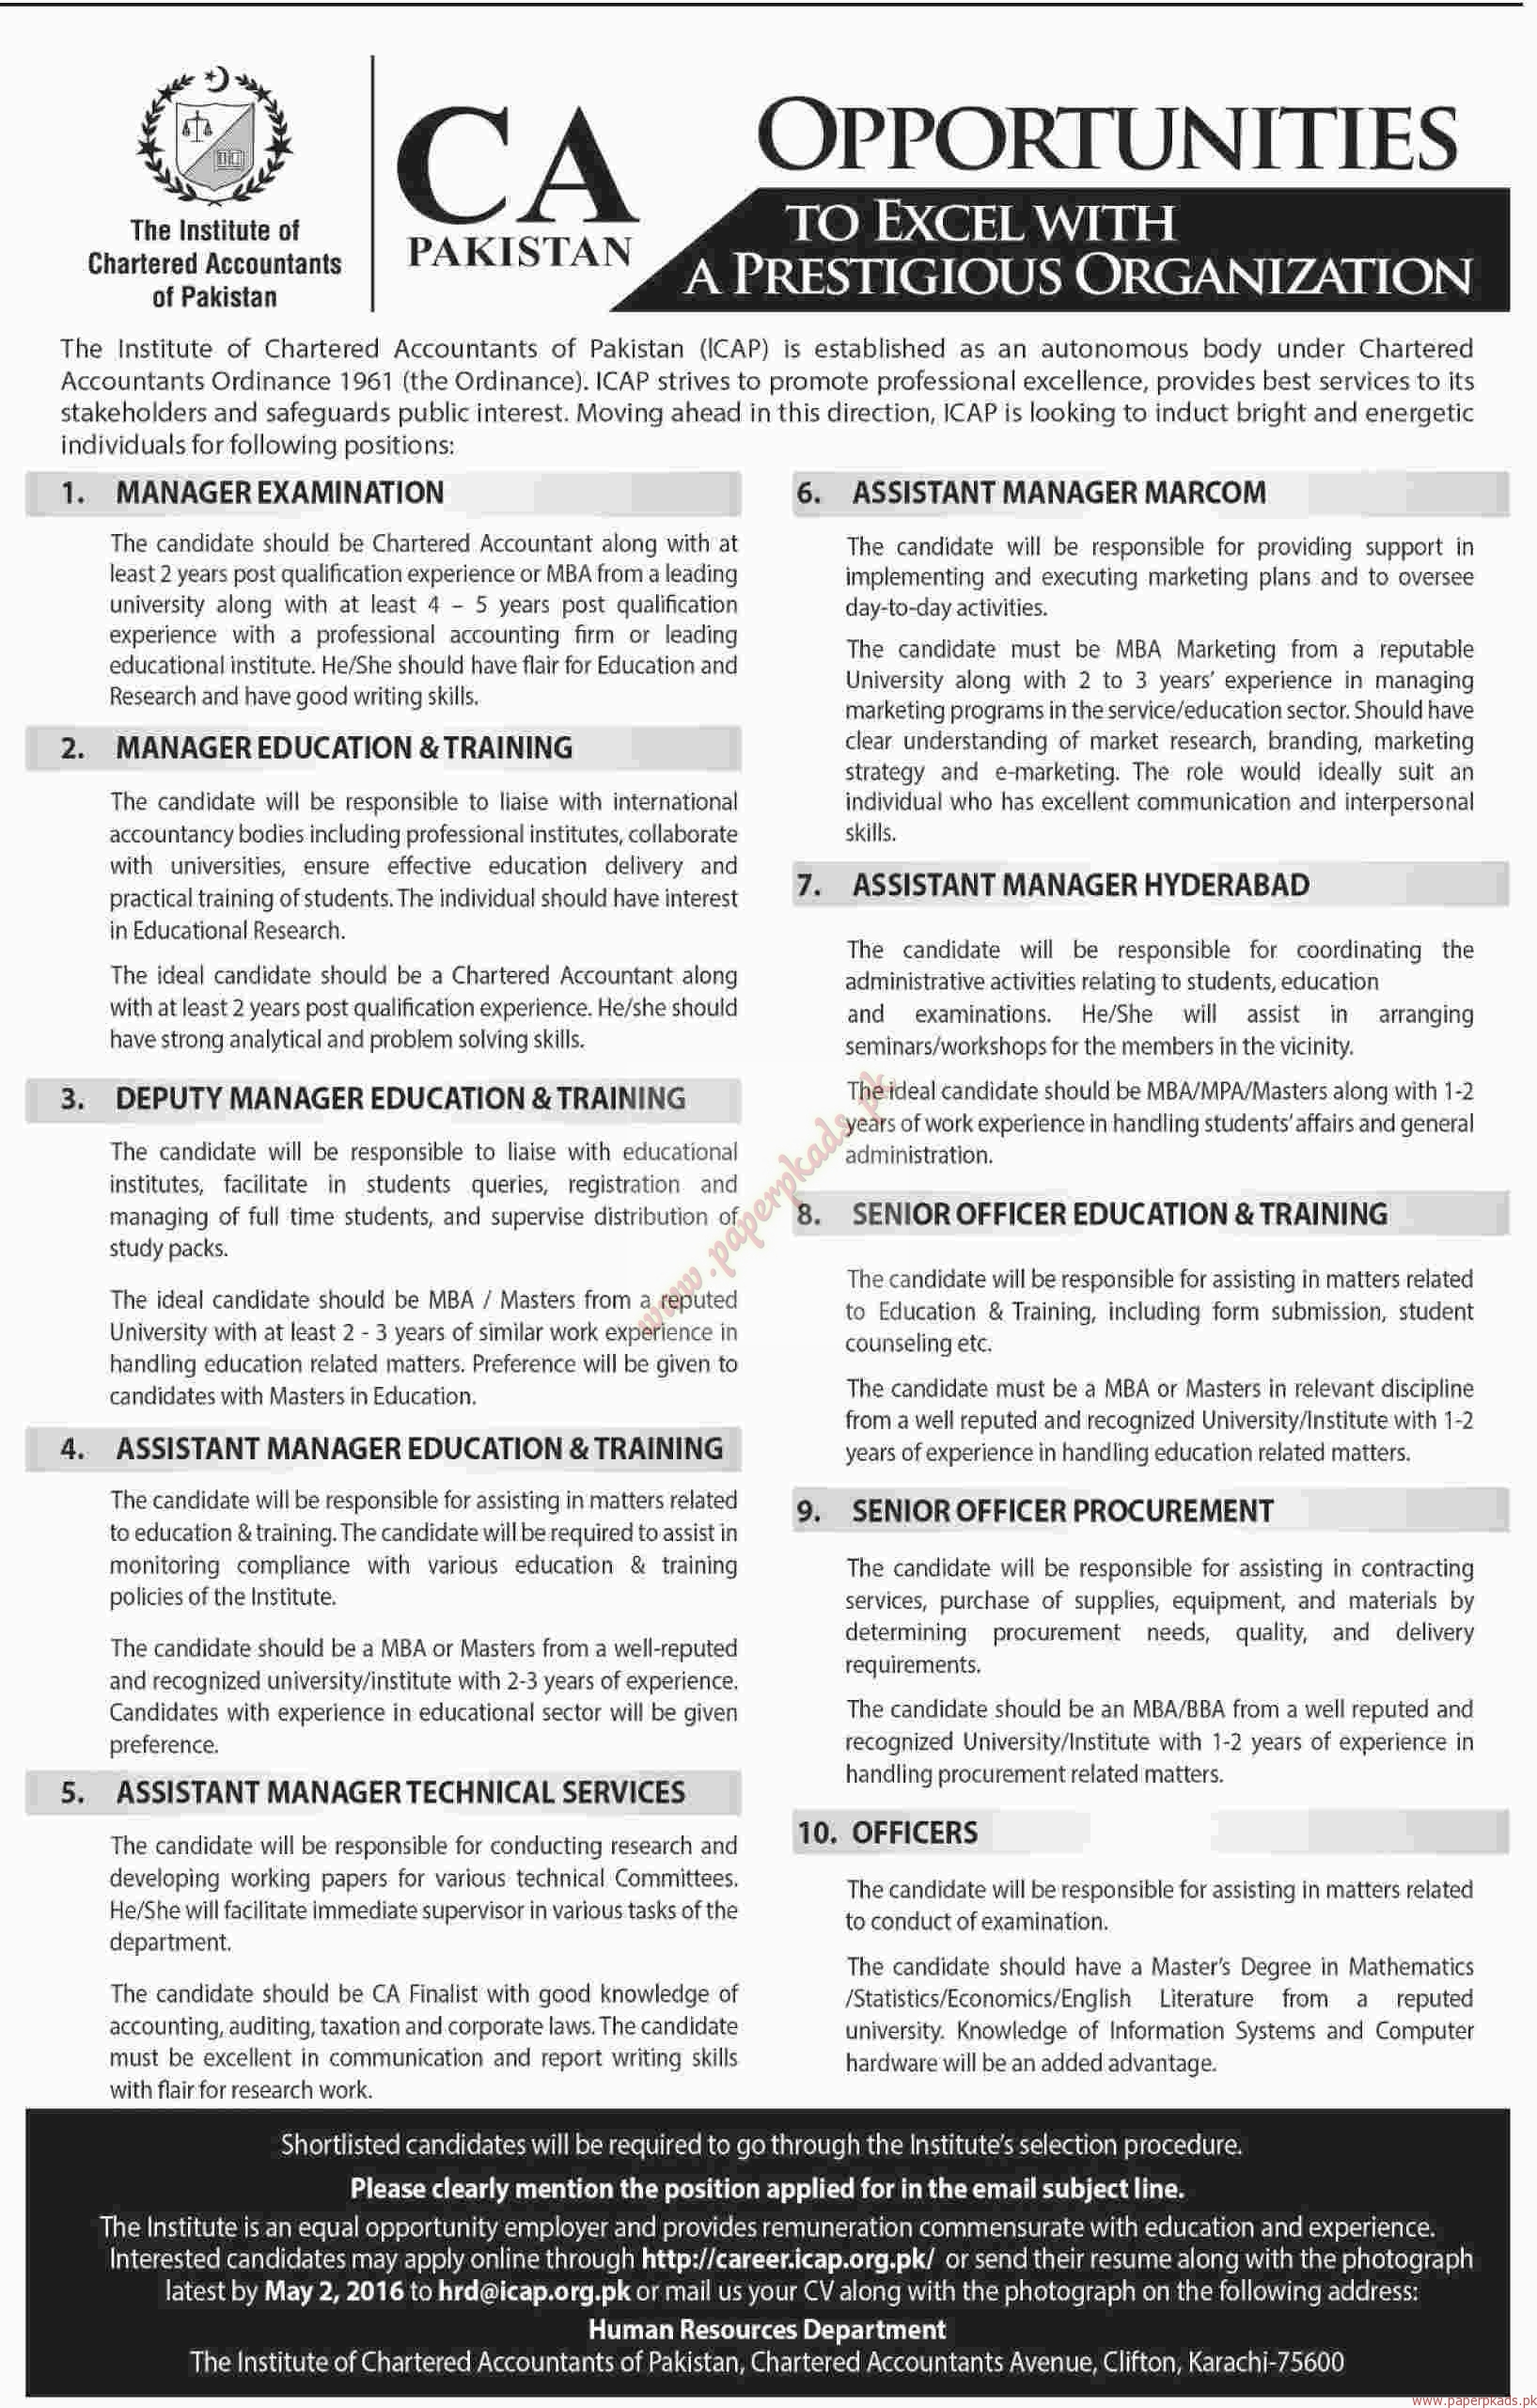 the institute of chartered accountant of jobs dawn jobs the institute of chartered accountant of jobs dawn jobs ads 17 2016